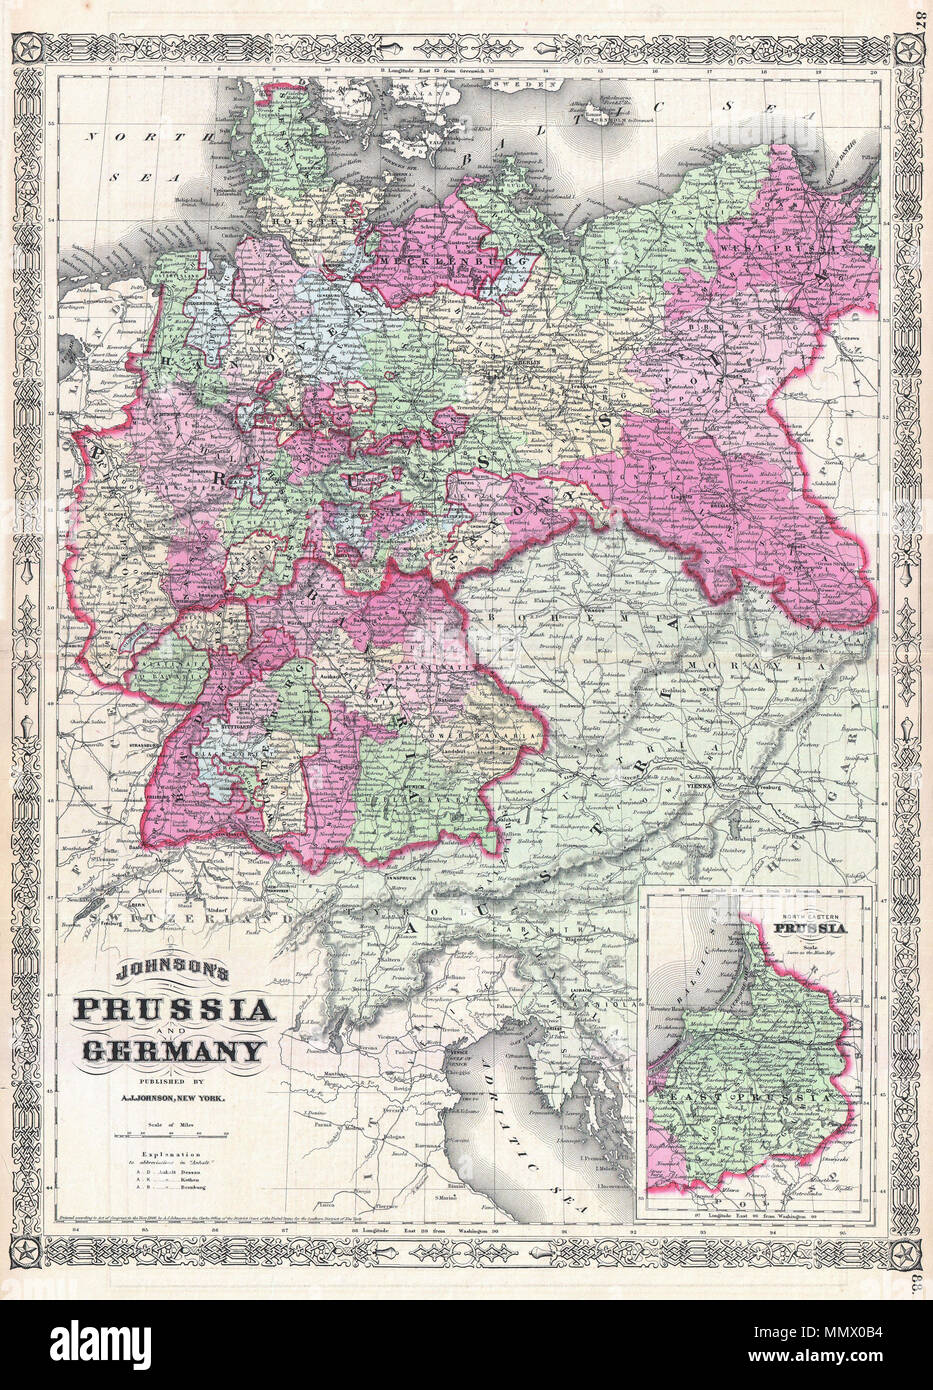 Map Of Germany To Color.English This Is A J Johnson And Ward S 1866 Map Of Prussia And